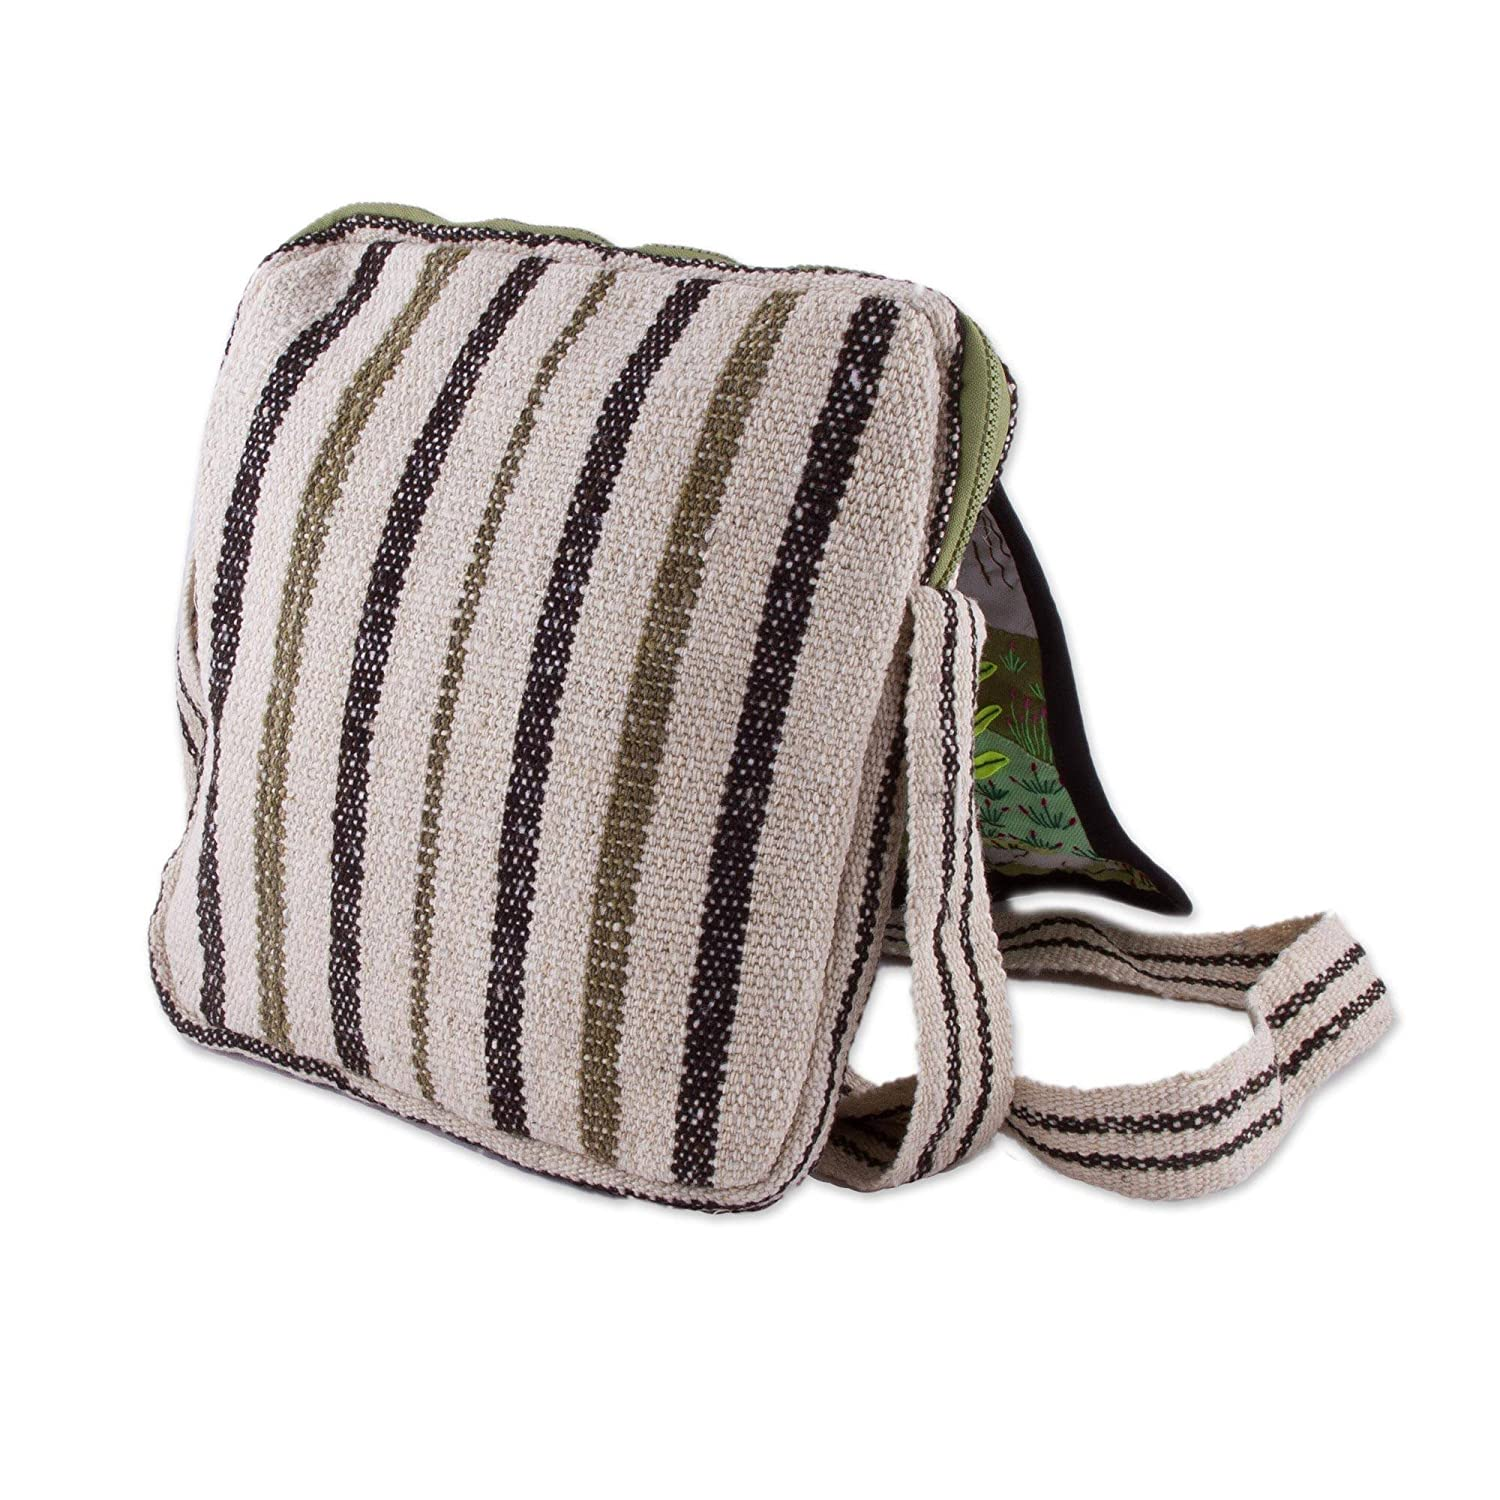 Marvelous Andes NOVICA Green Wool Patchwork Messenger Bag